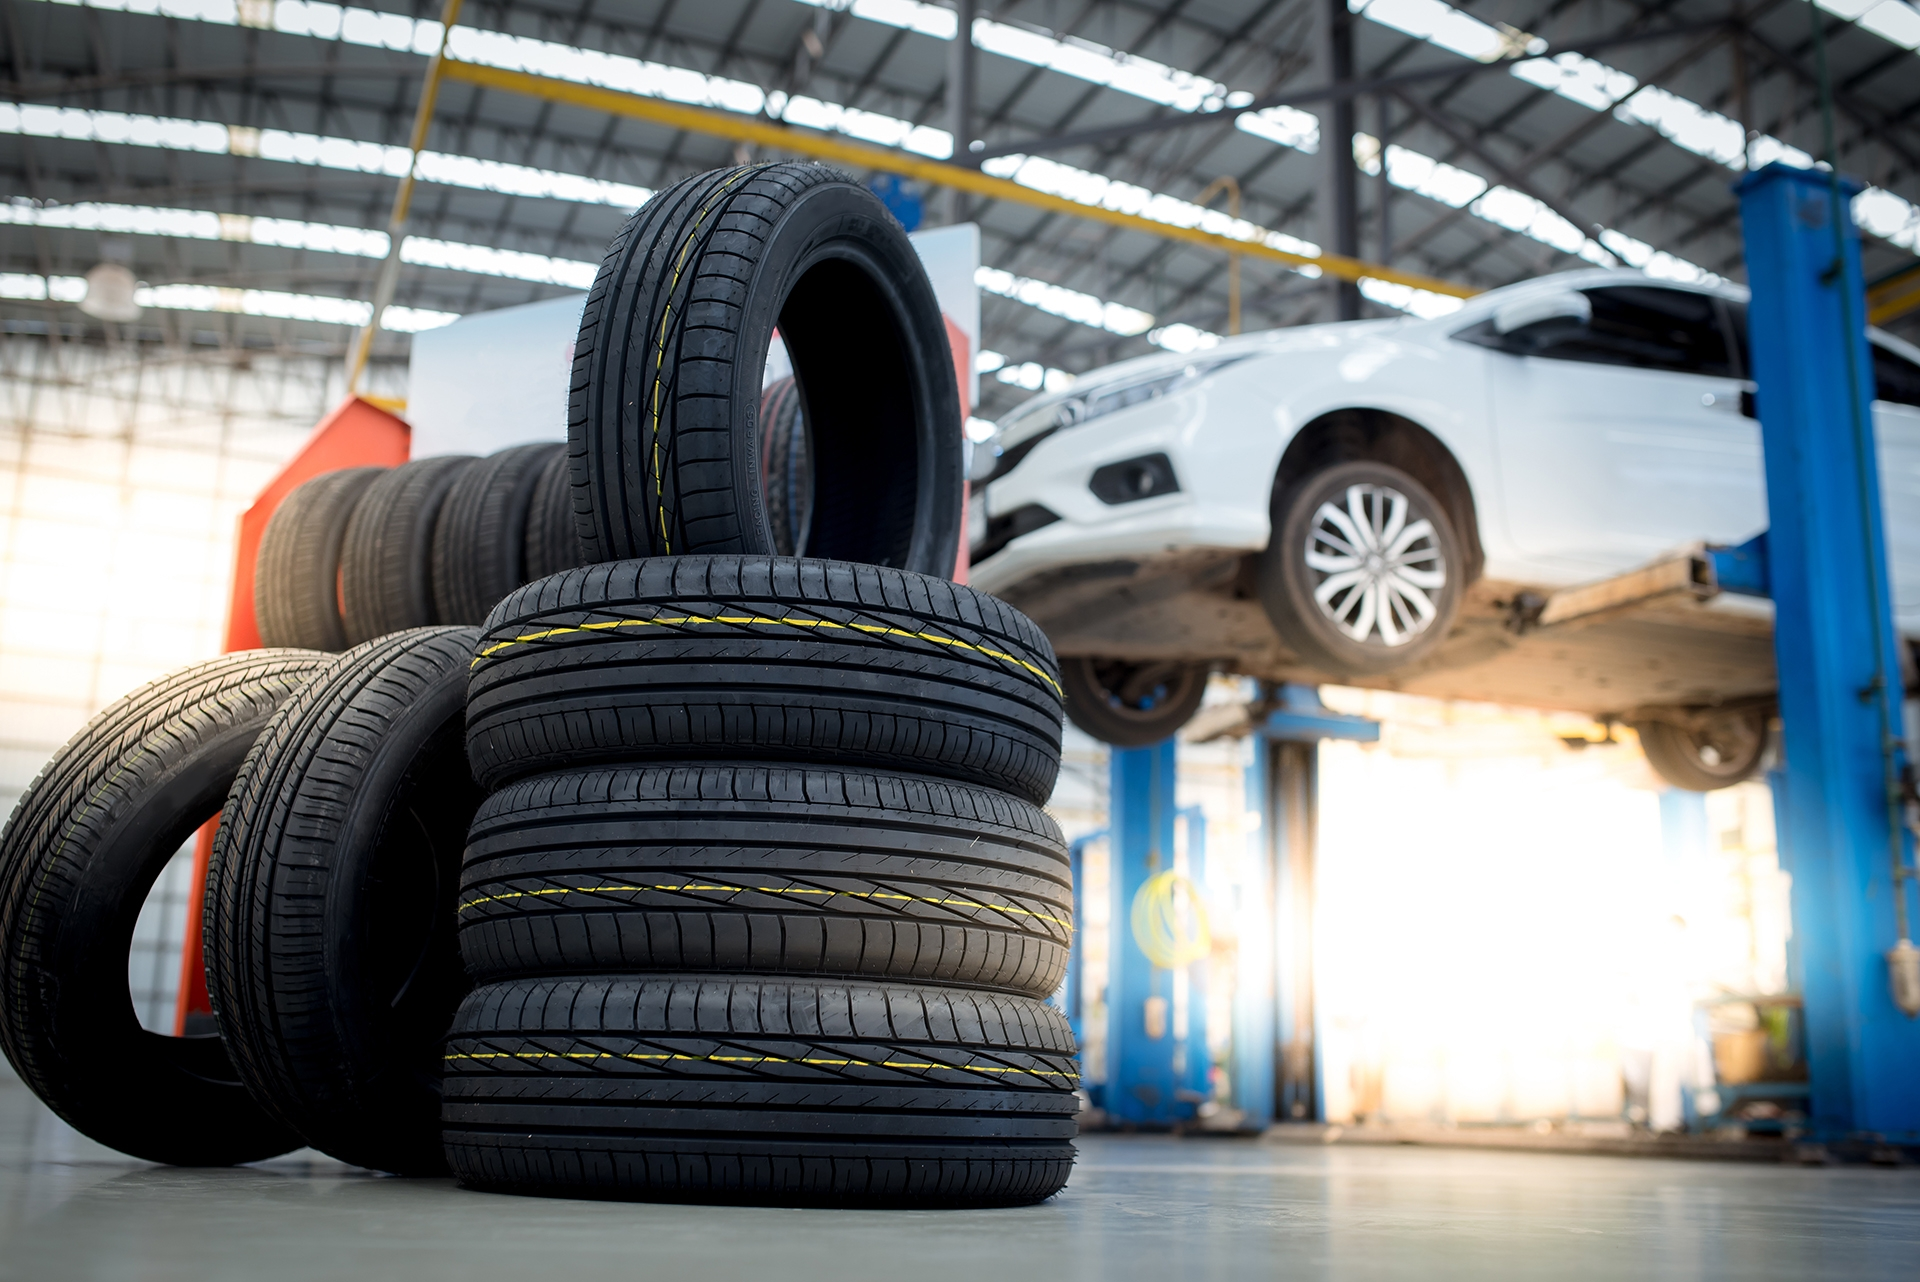 Tire Rotation: A Neglected Necessity